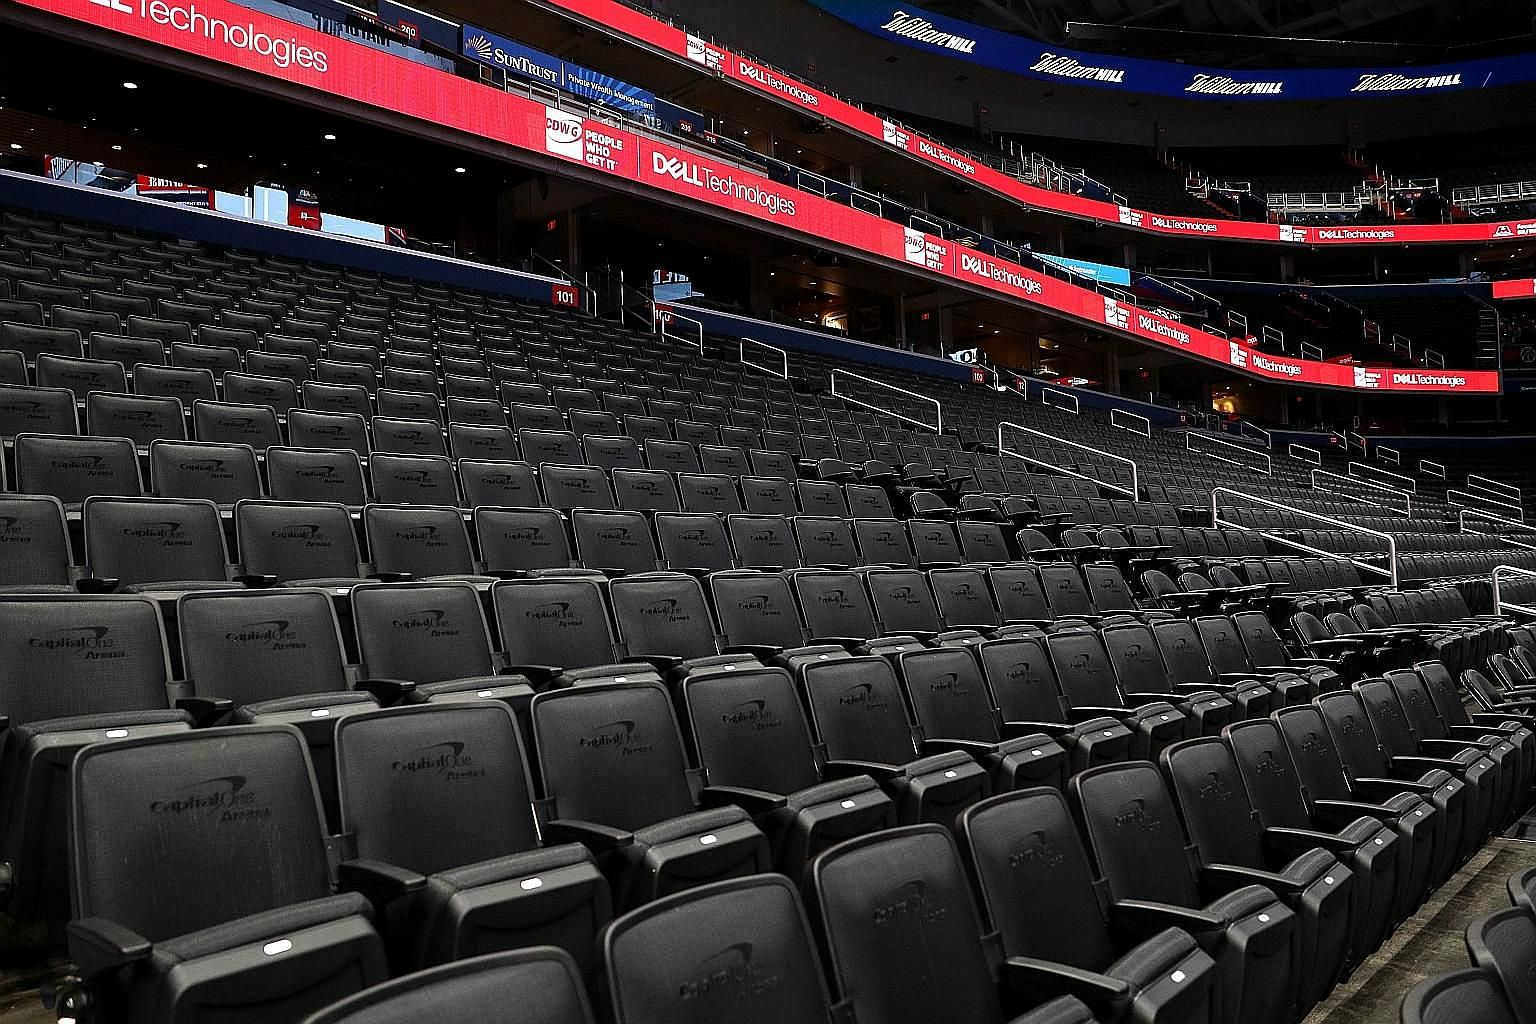 Empty seats at the Capital One Arena, home of the Washington Wizards. The NBA is bracing itself to play games at empty stadiums to resume the league while the coronavirus pandemic persists.